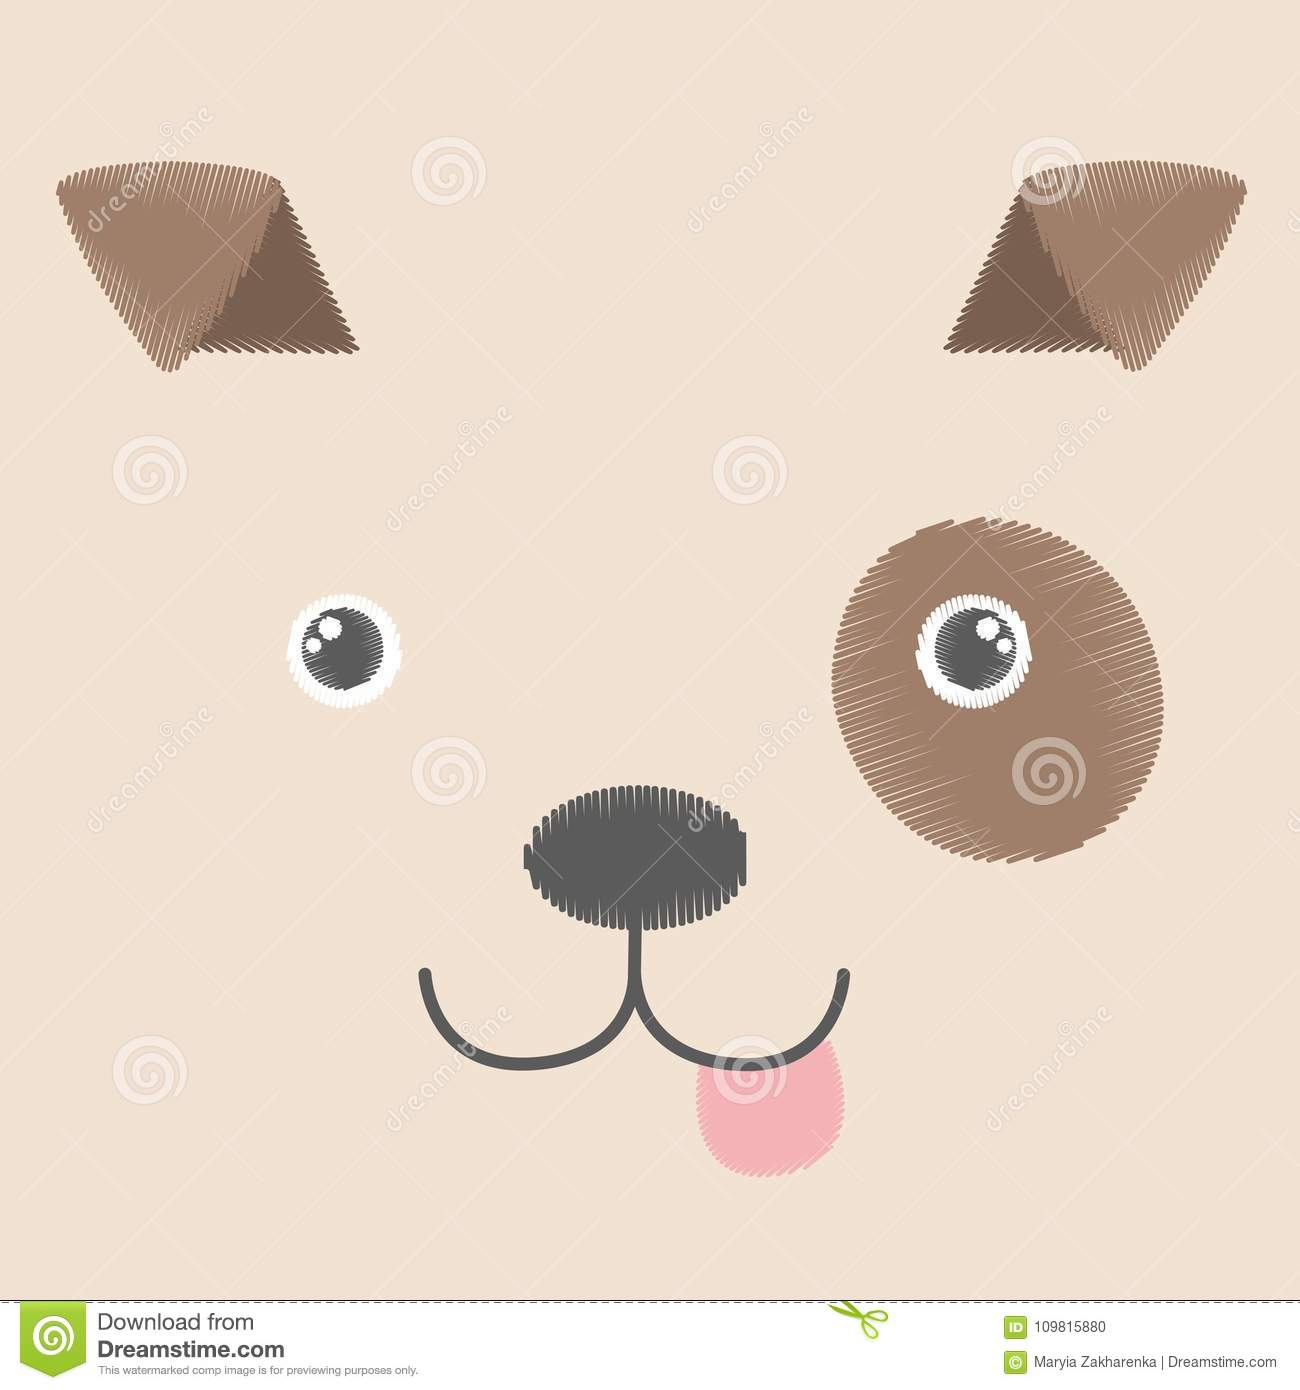 vector illustration of embroidery of brown toy dog. baby kawaii